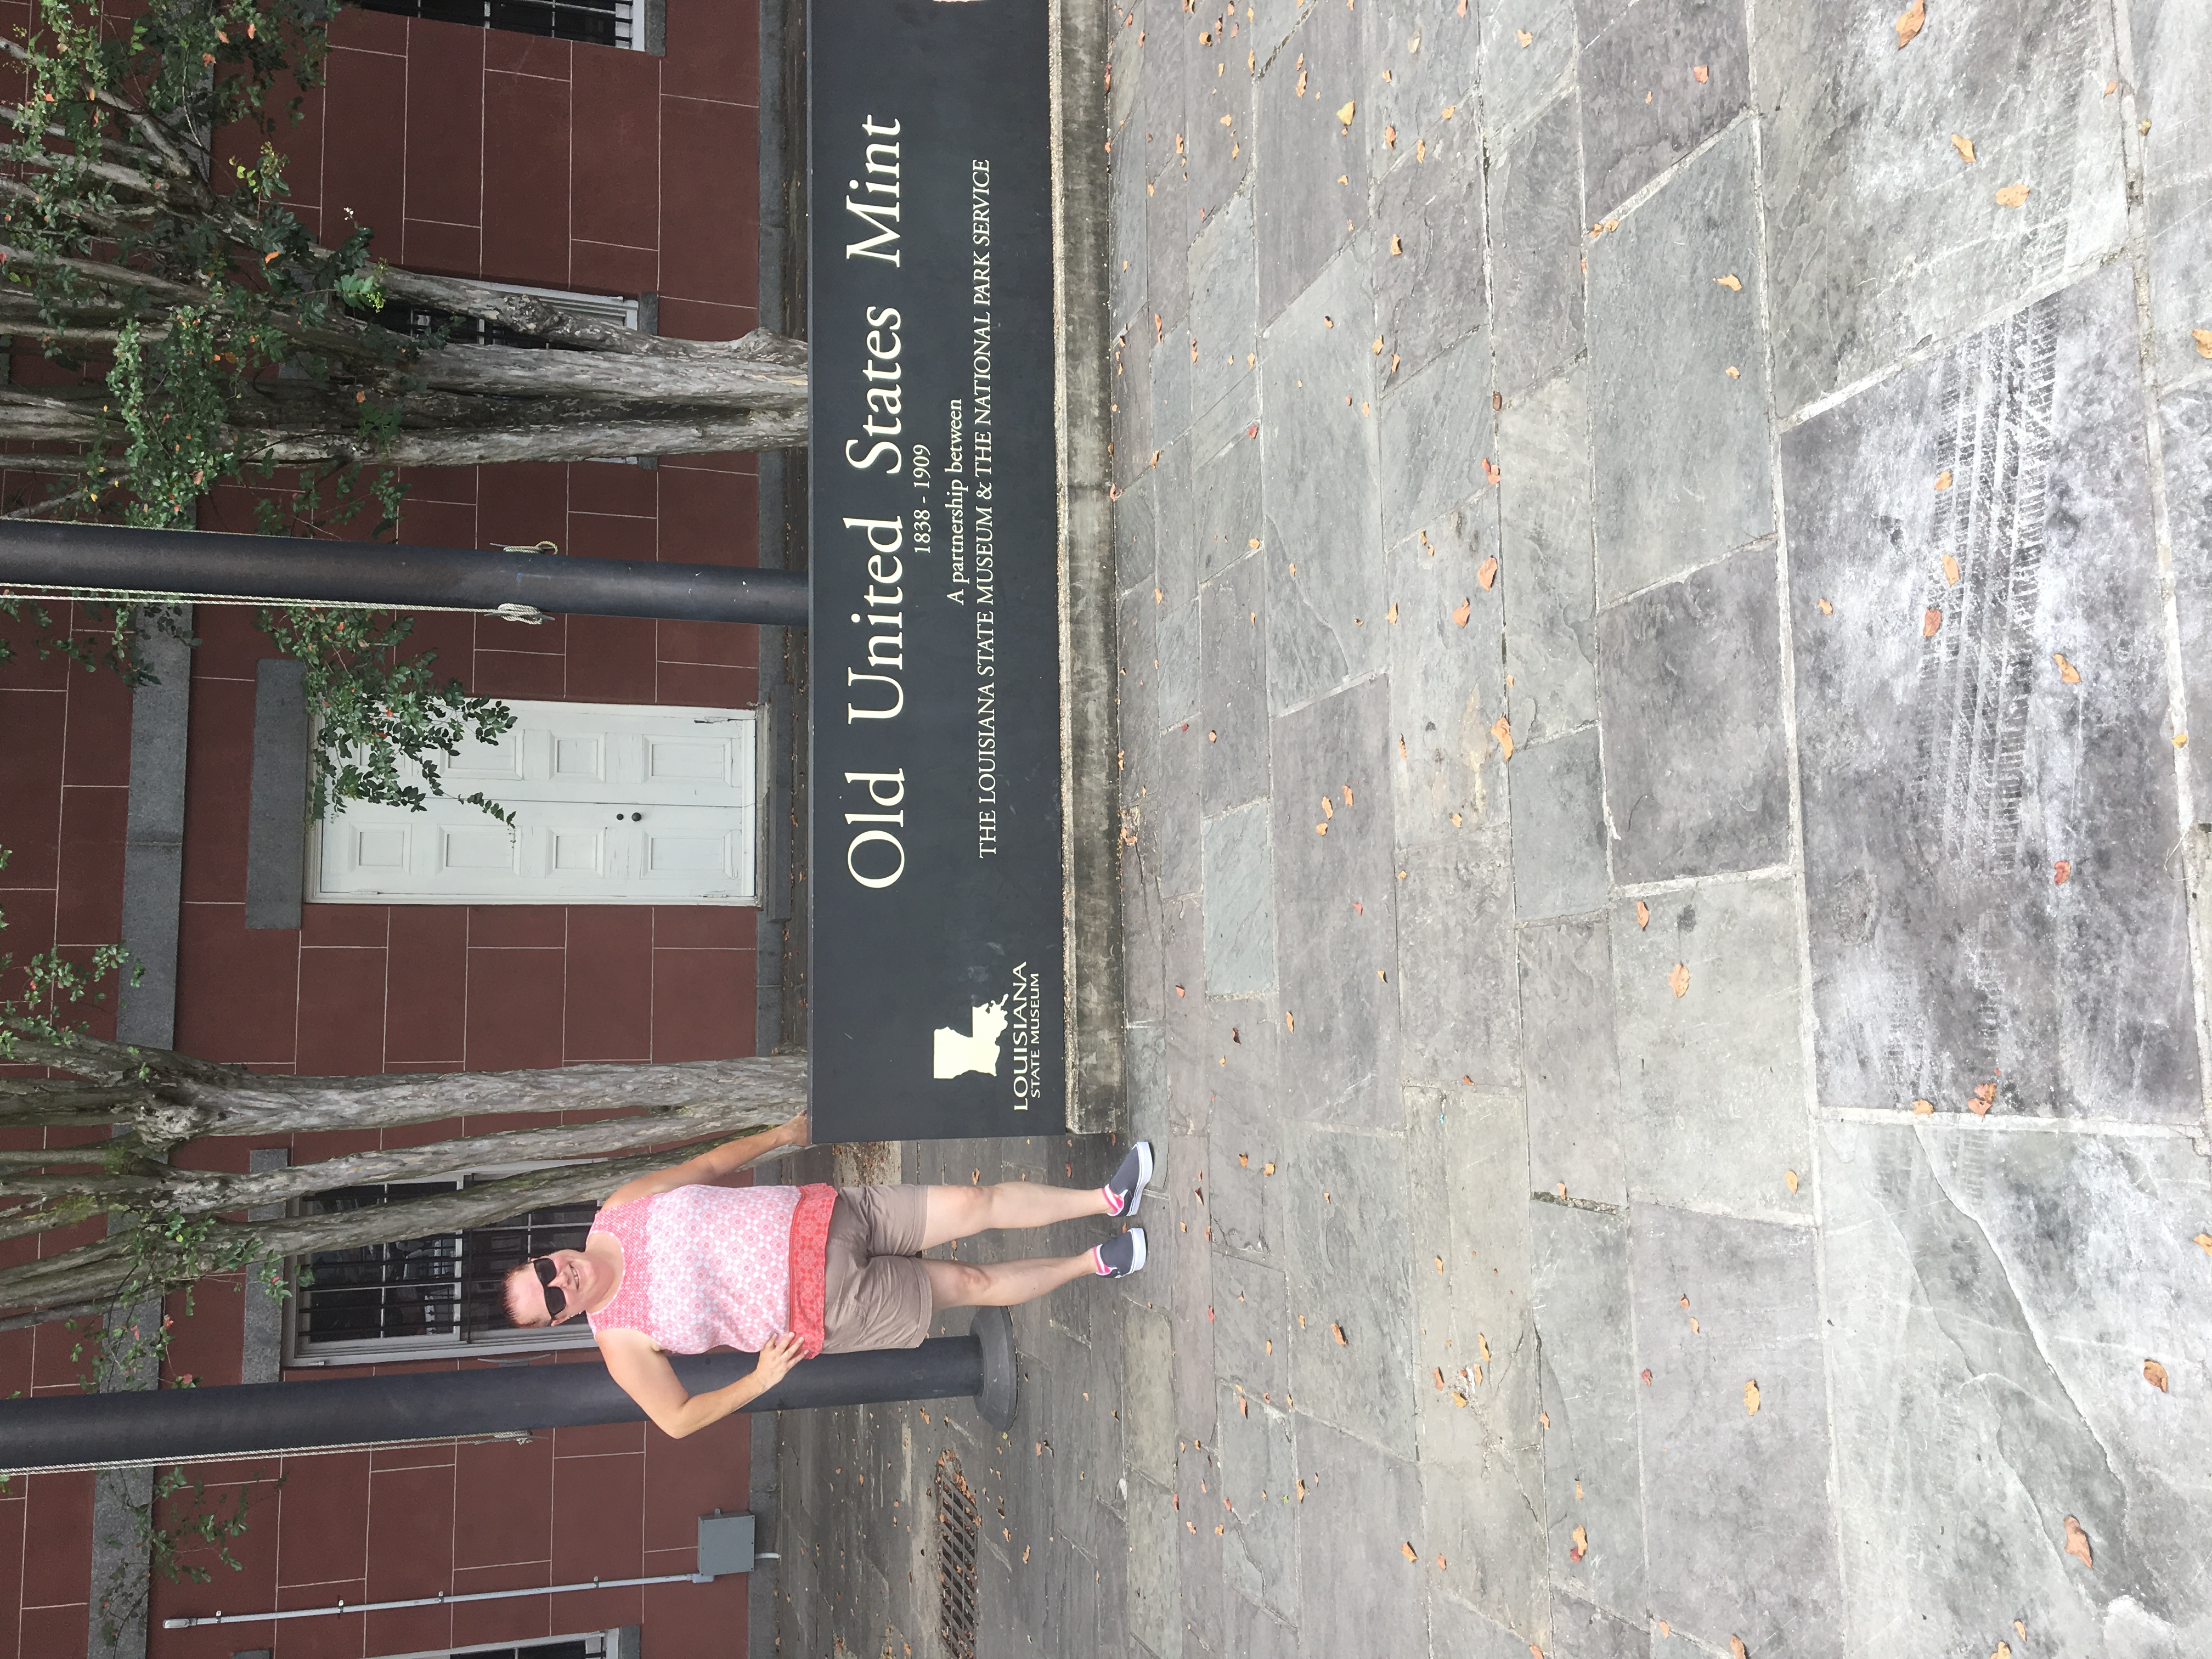 Mrs. Maben in New Orleans